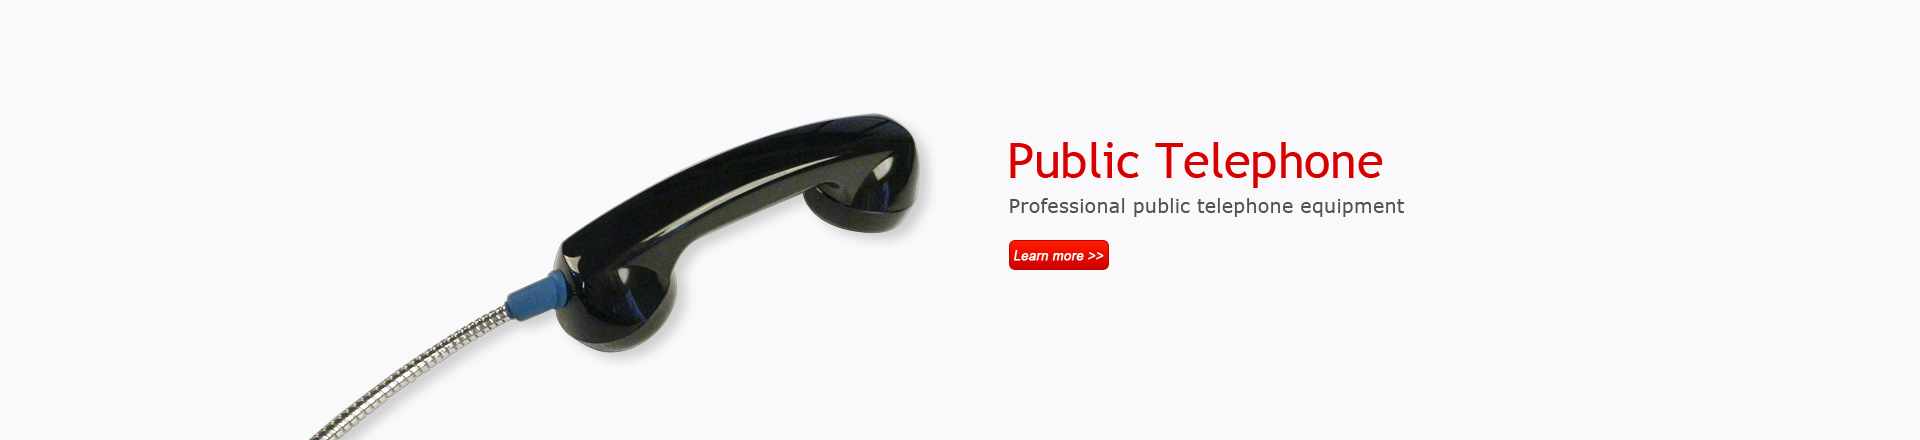 Professional public telephone equipment